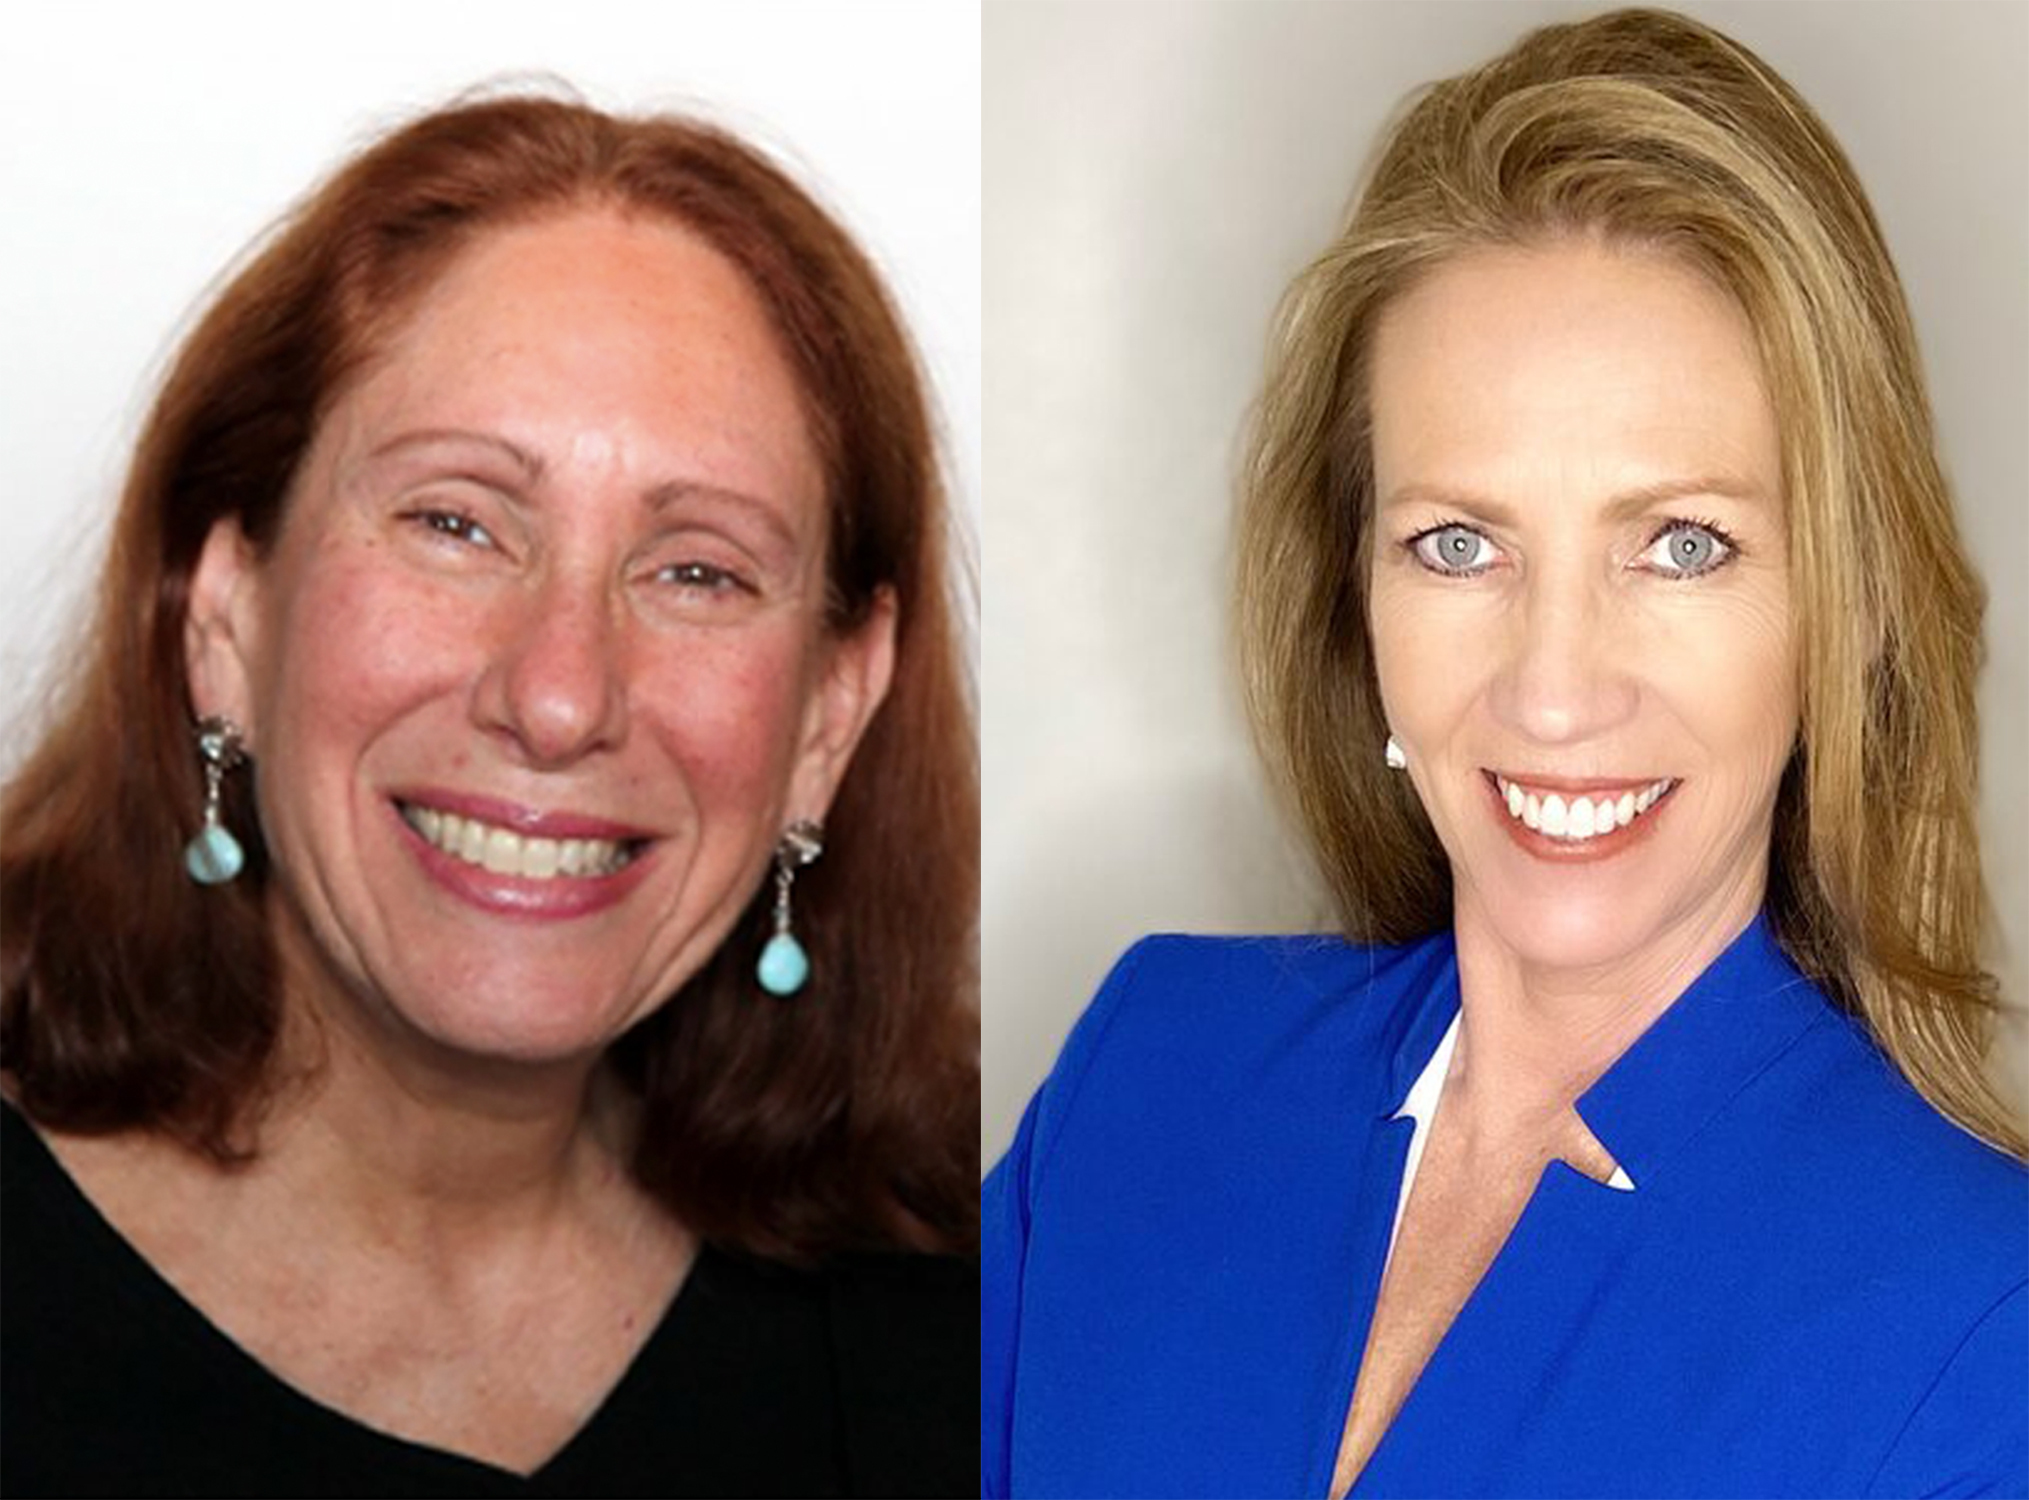 Attorneys Bonnie McGrath (left) and Maureen O'Leary are both on the March 17 Cook County ballot in judicial races, but voters would be hard-pressed to know they're running.